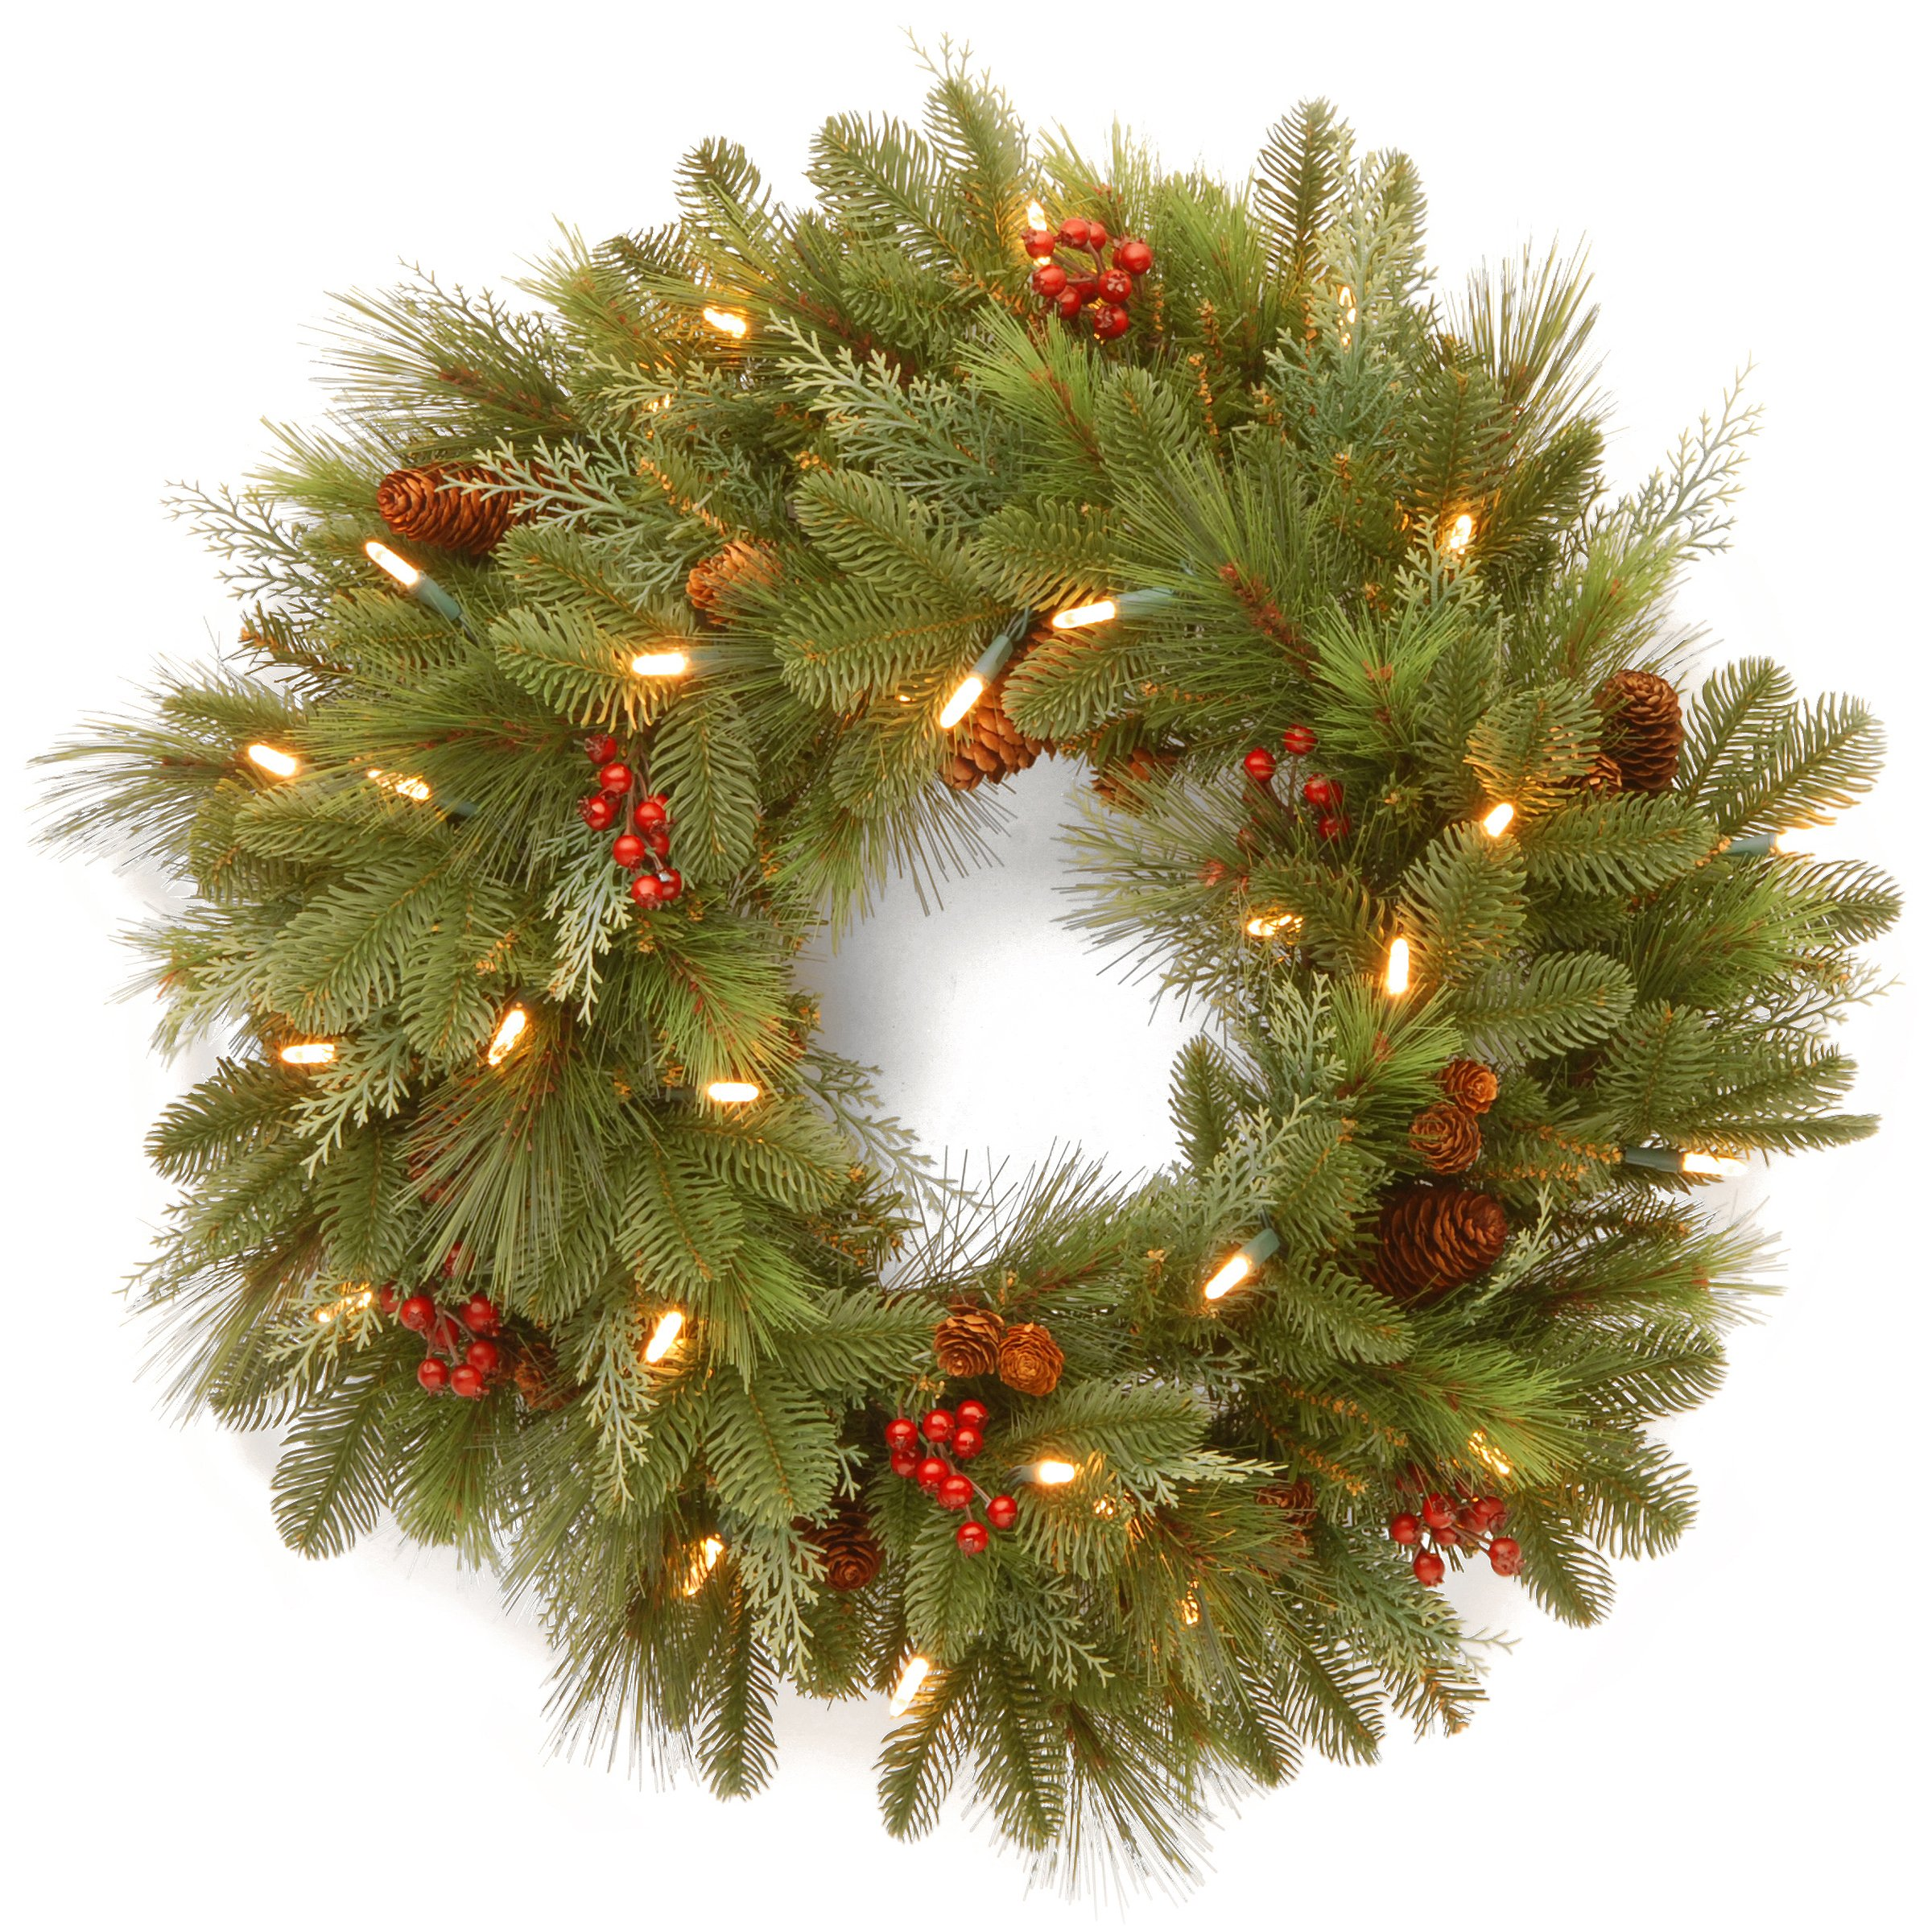 National Tree 24 Inch Noelle Wreath with 30 Battery Operated Soft White LED Lights (NL13-300L-24WB1)